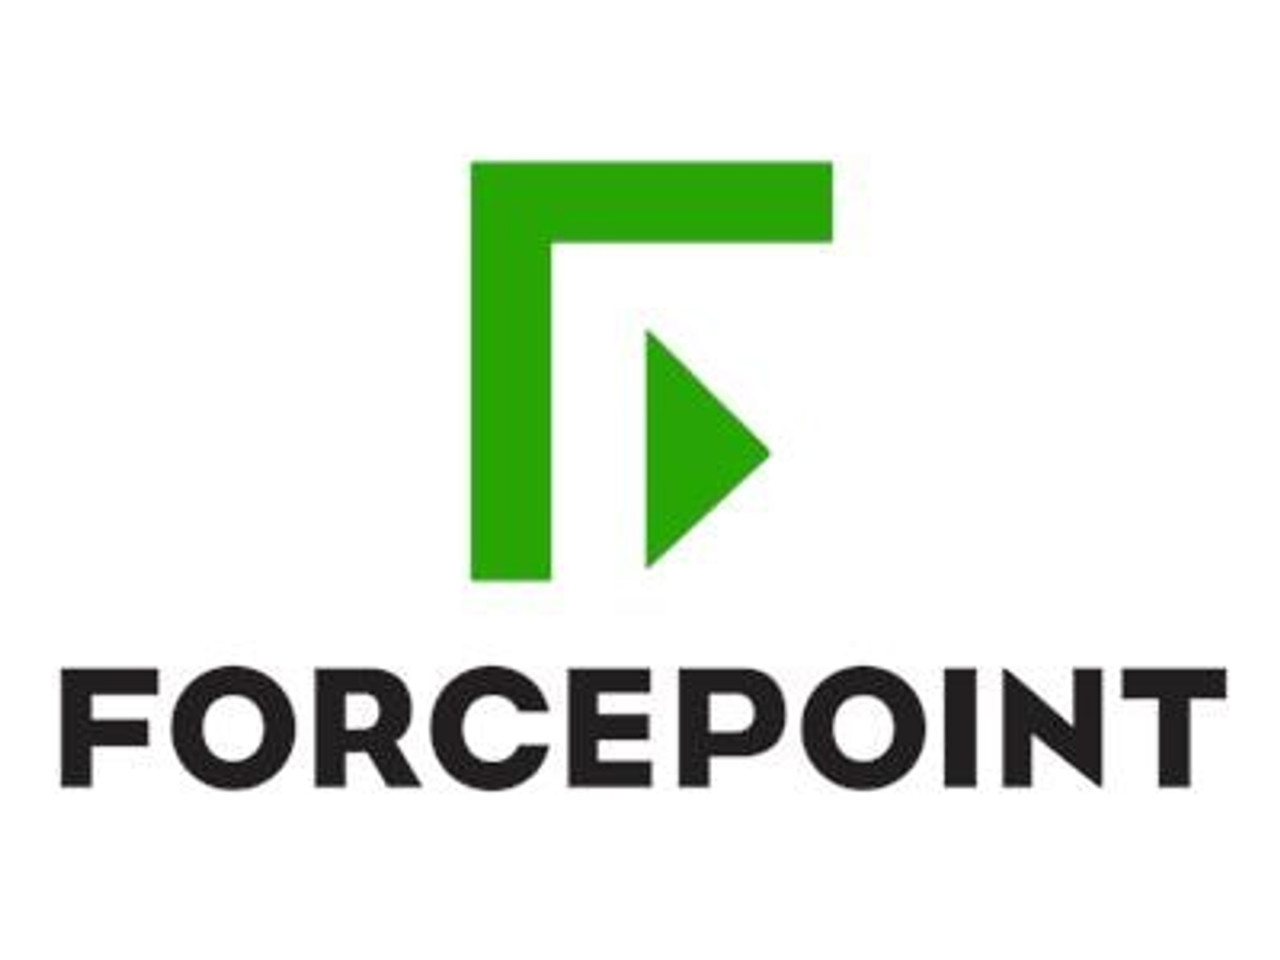 Forcepoint Insider Threat Implementation - Inte